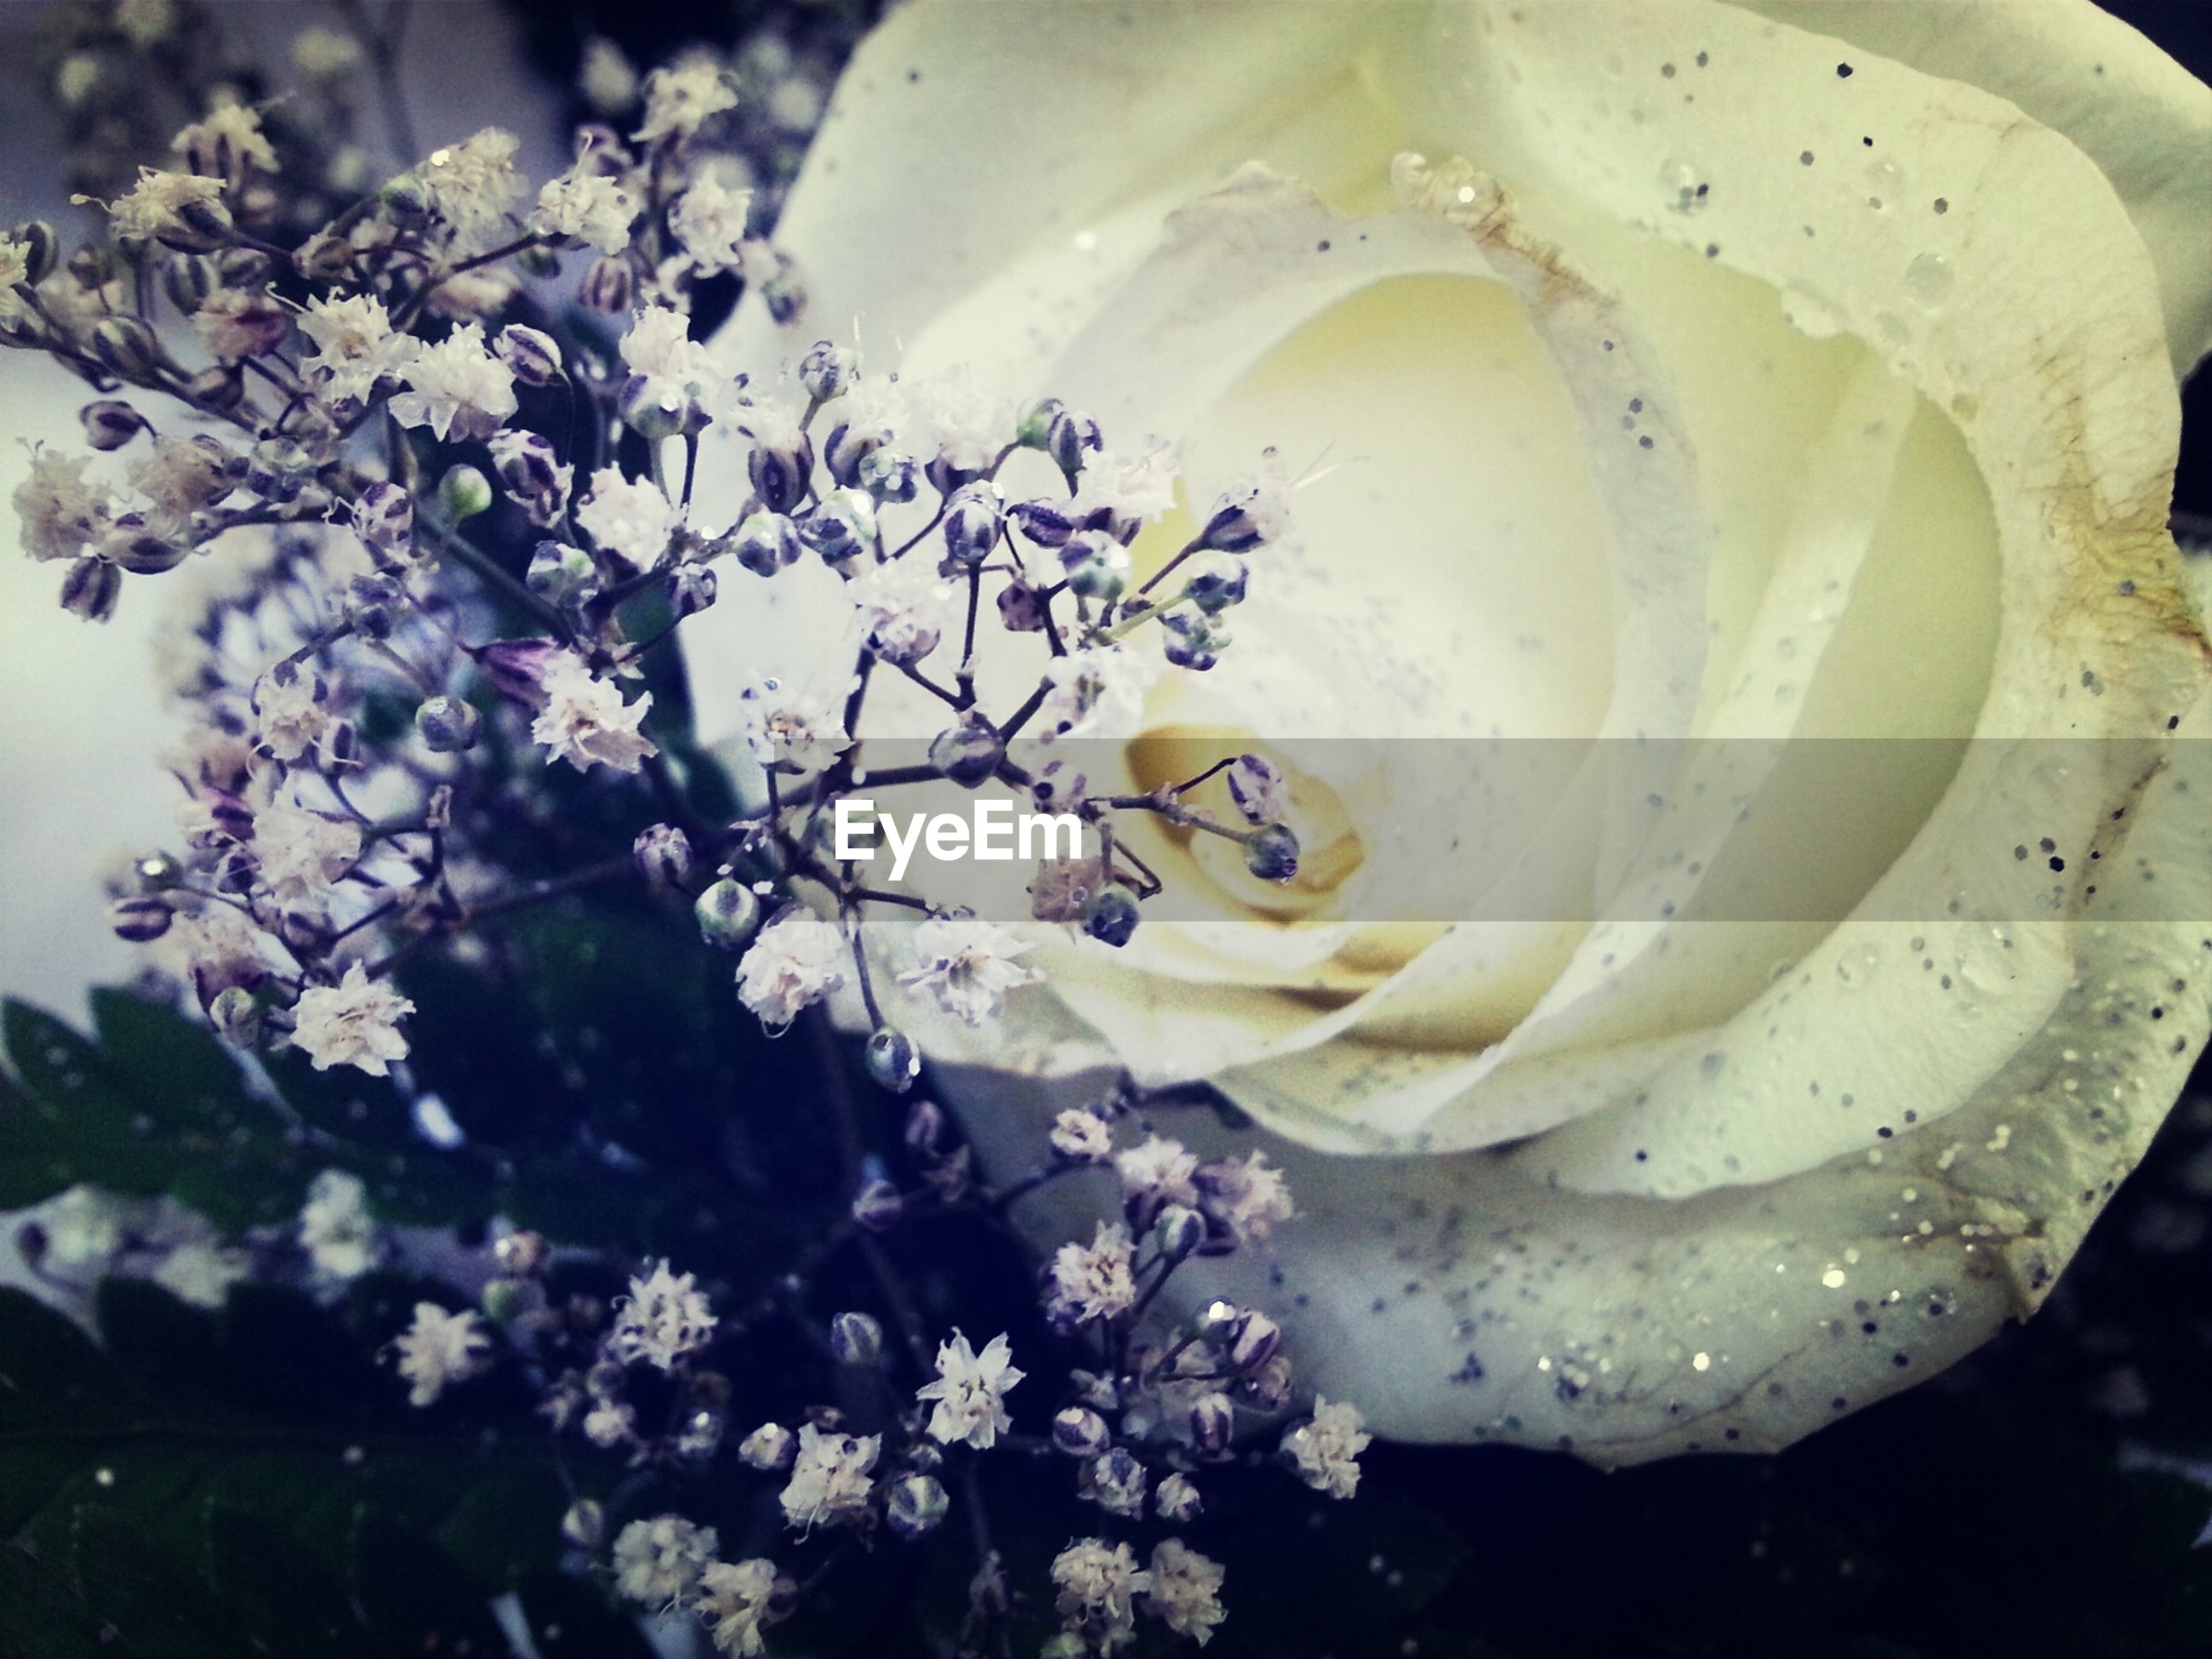 flower, freshness, petal, fragility, flower head, close-up, beauty in nature, white color, growth, rose - flower, nature, high angle view, blooming, focus on foreground, day, no people, in bloom, blossom, outdoors, single flower